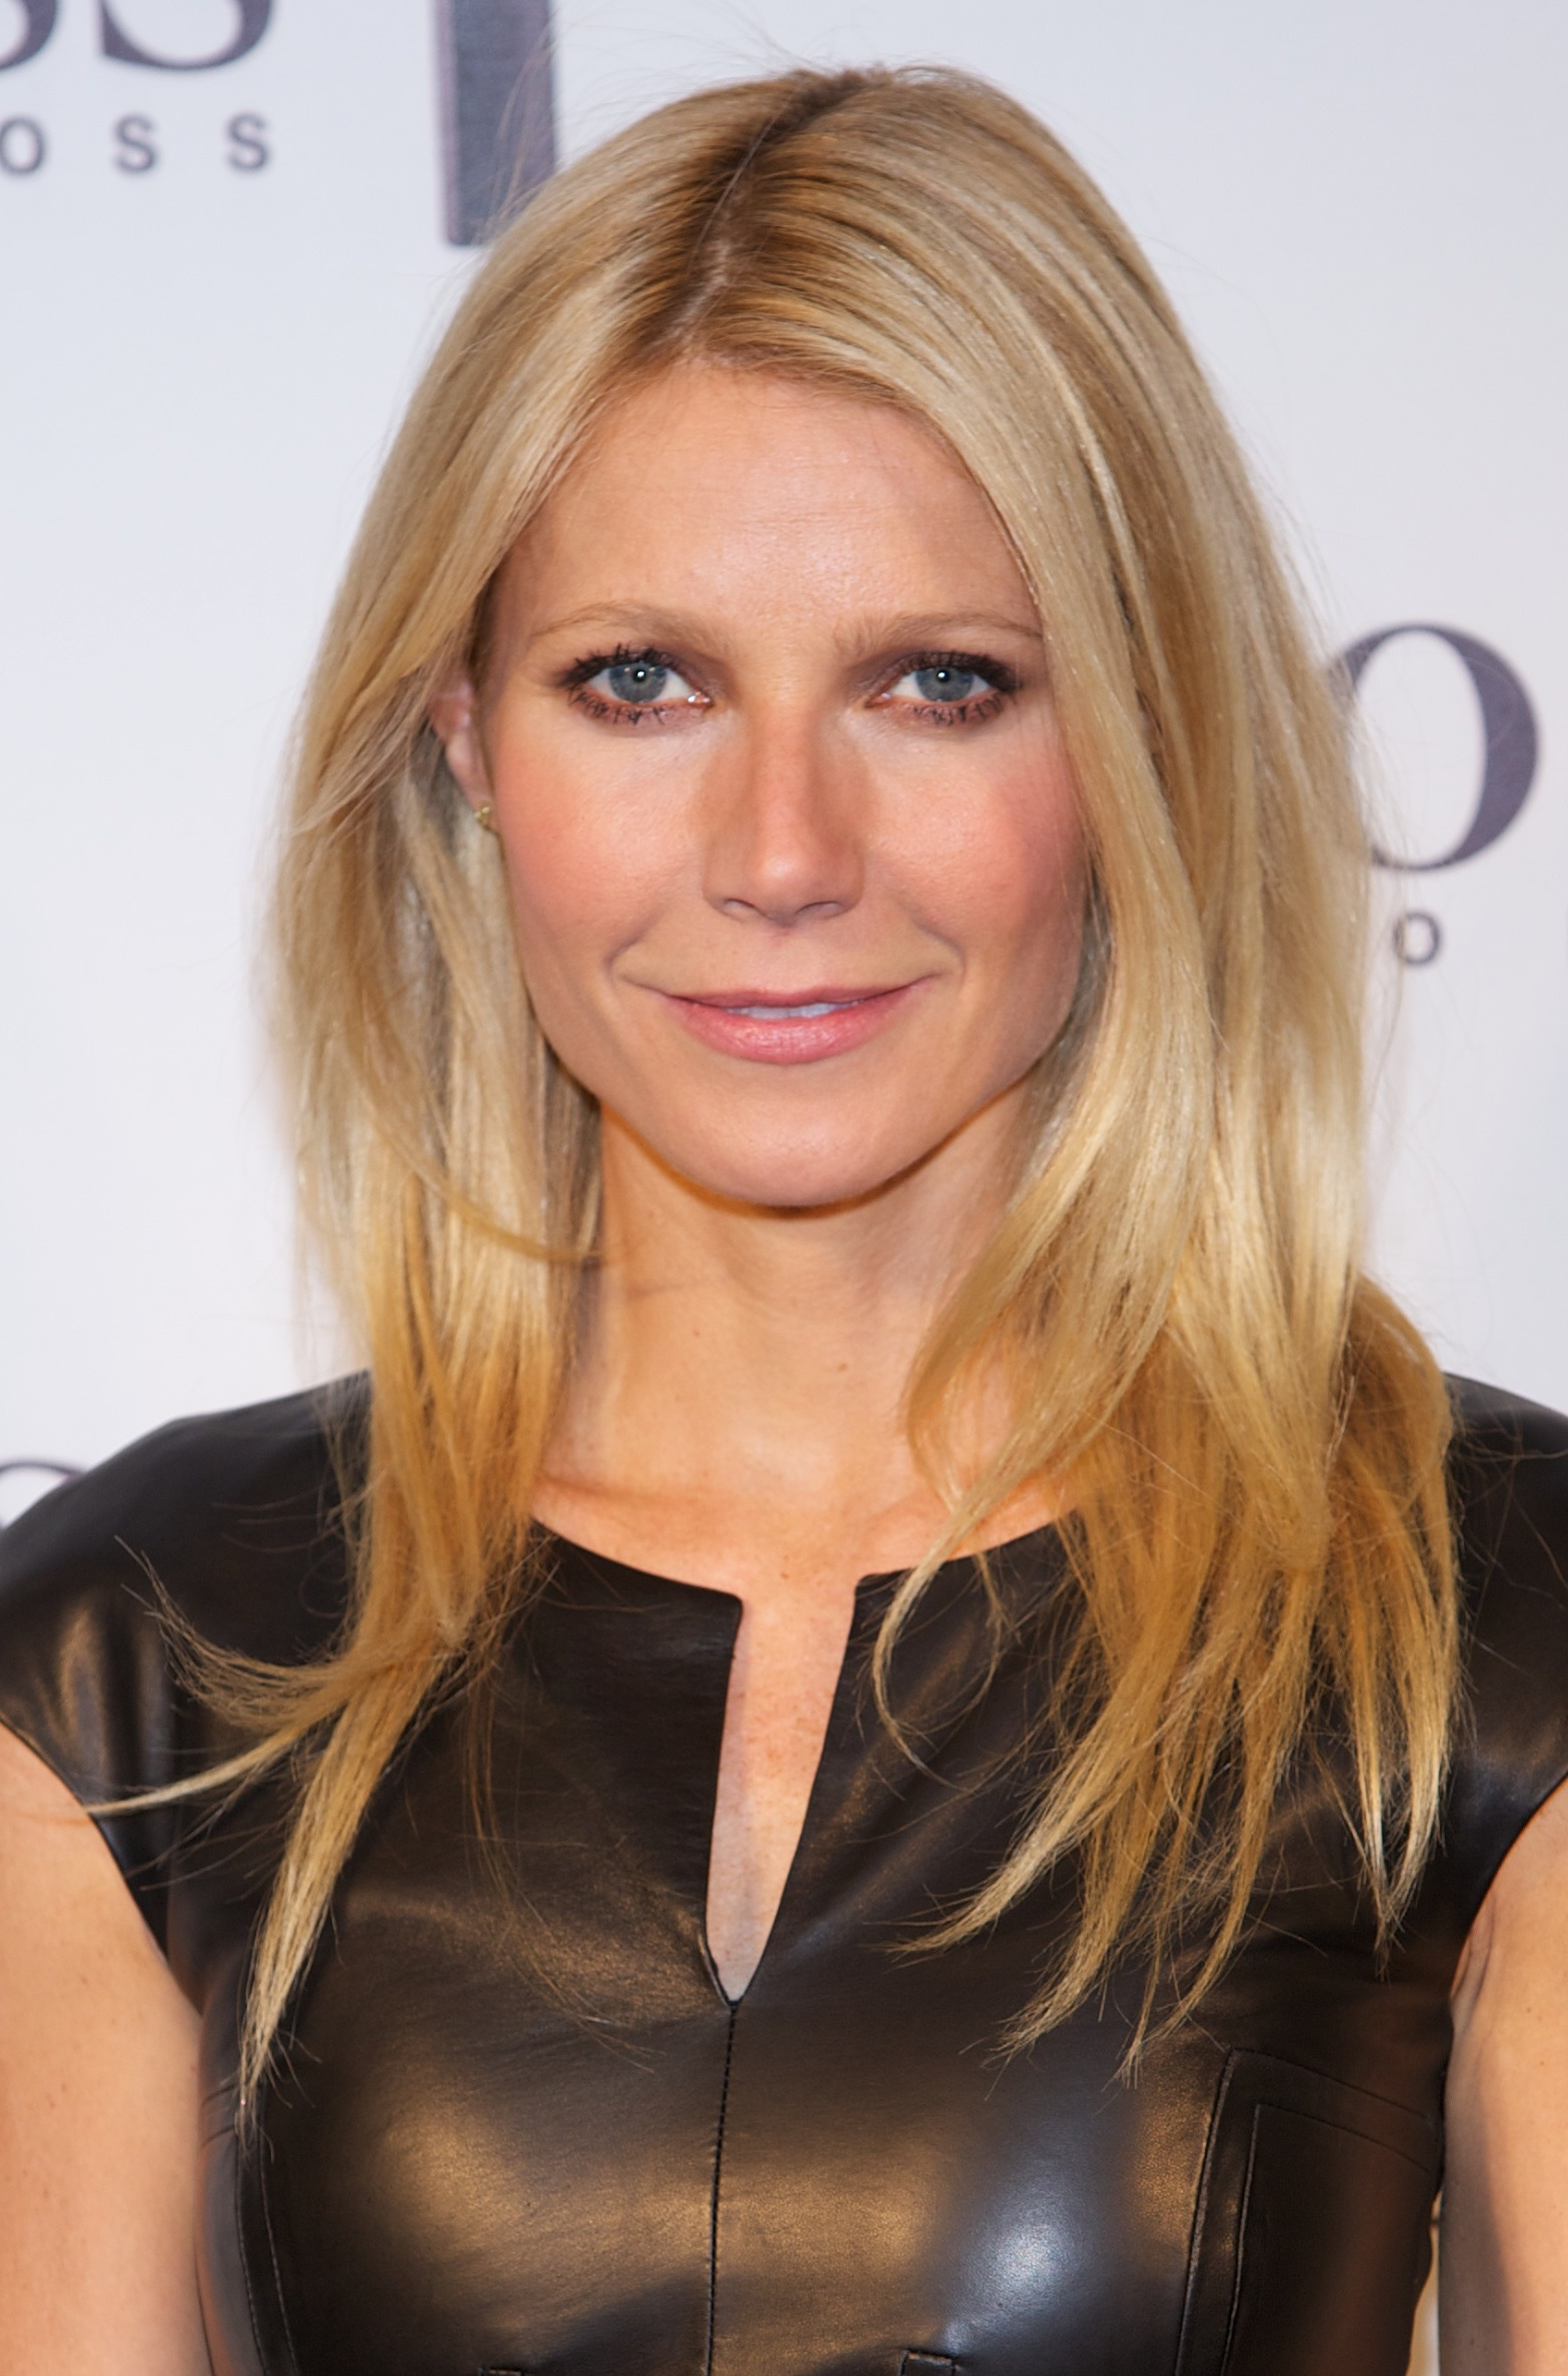 Gwyneth Paltrow Presents Boss Nuit Pourfemme Fragrance